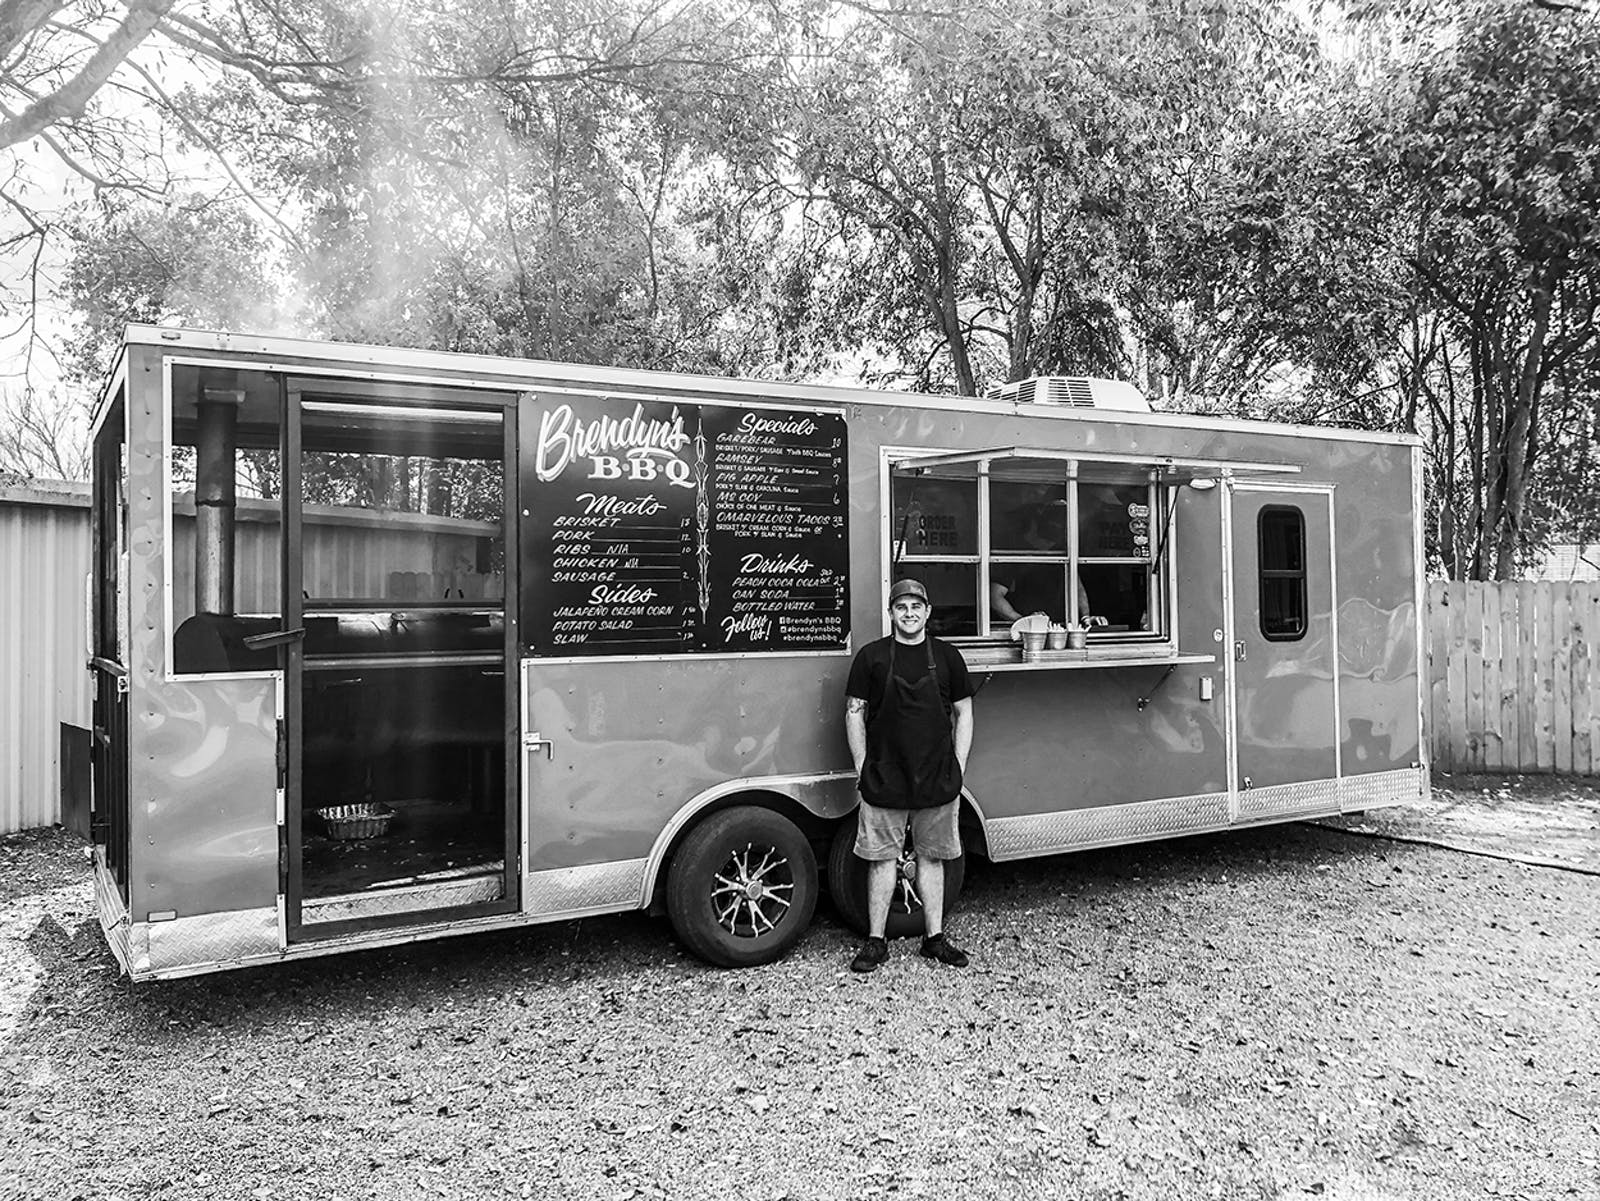 Brendyn Todd outside of his food truck in Nacogdoches